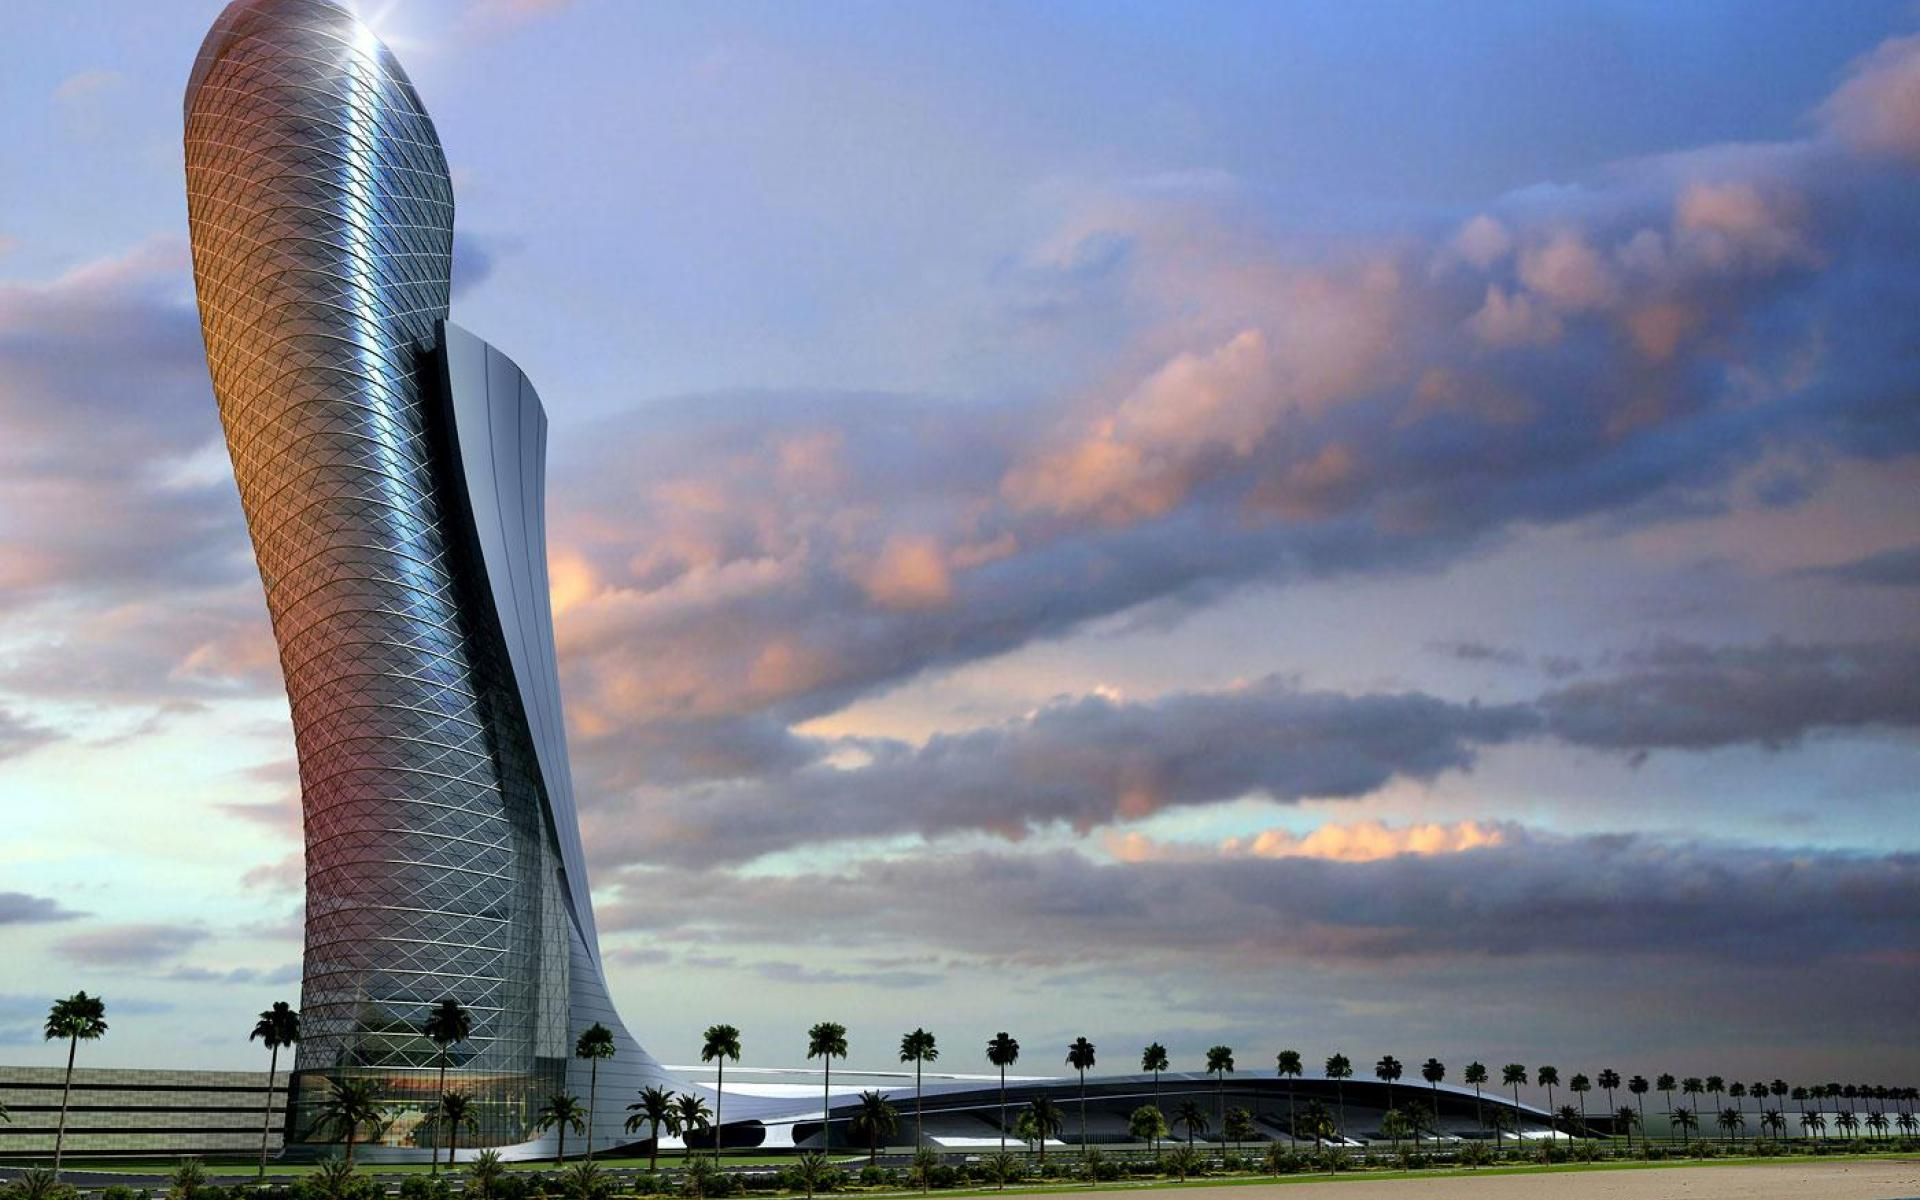 architecture adnec capital wallpapers abu dhabi gate national exhibitions company architectural hd amazing skyscaraper marvels everyone should visit stedium interior